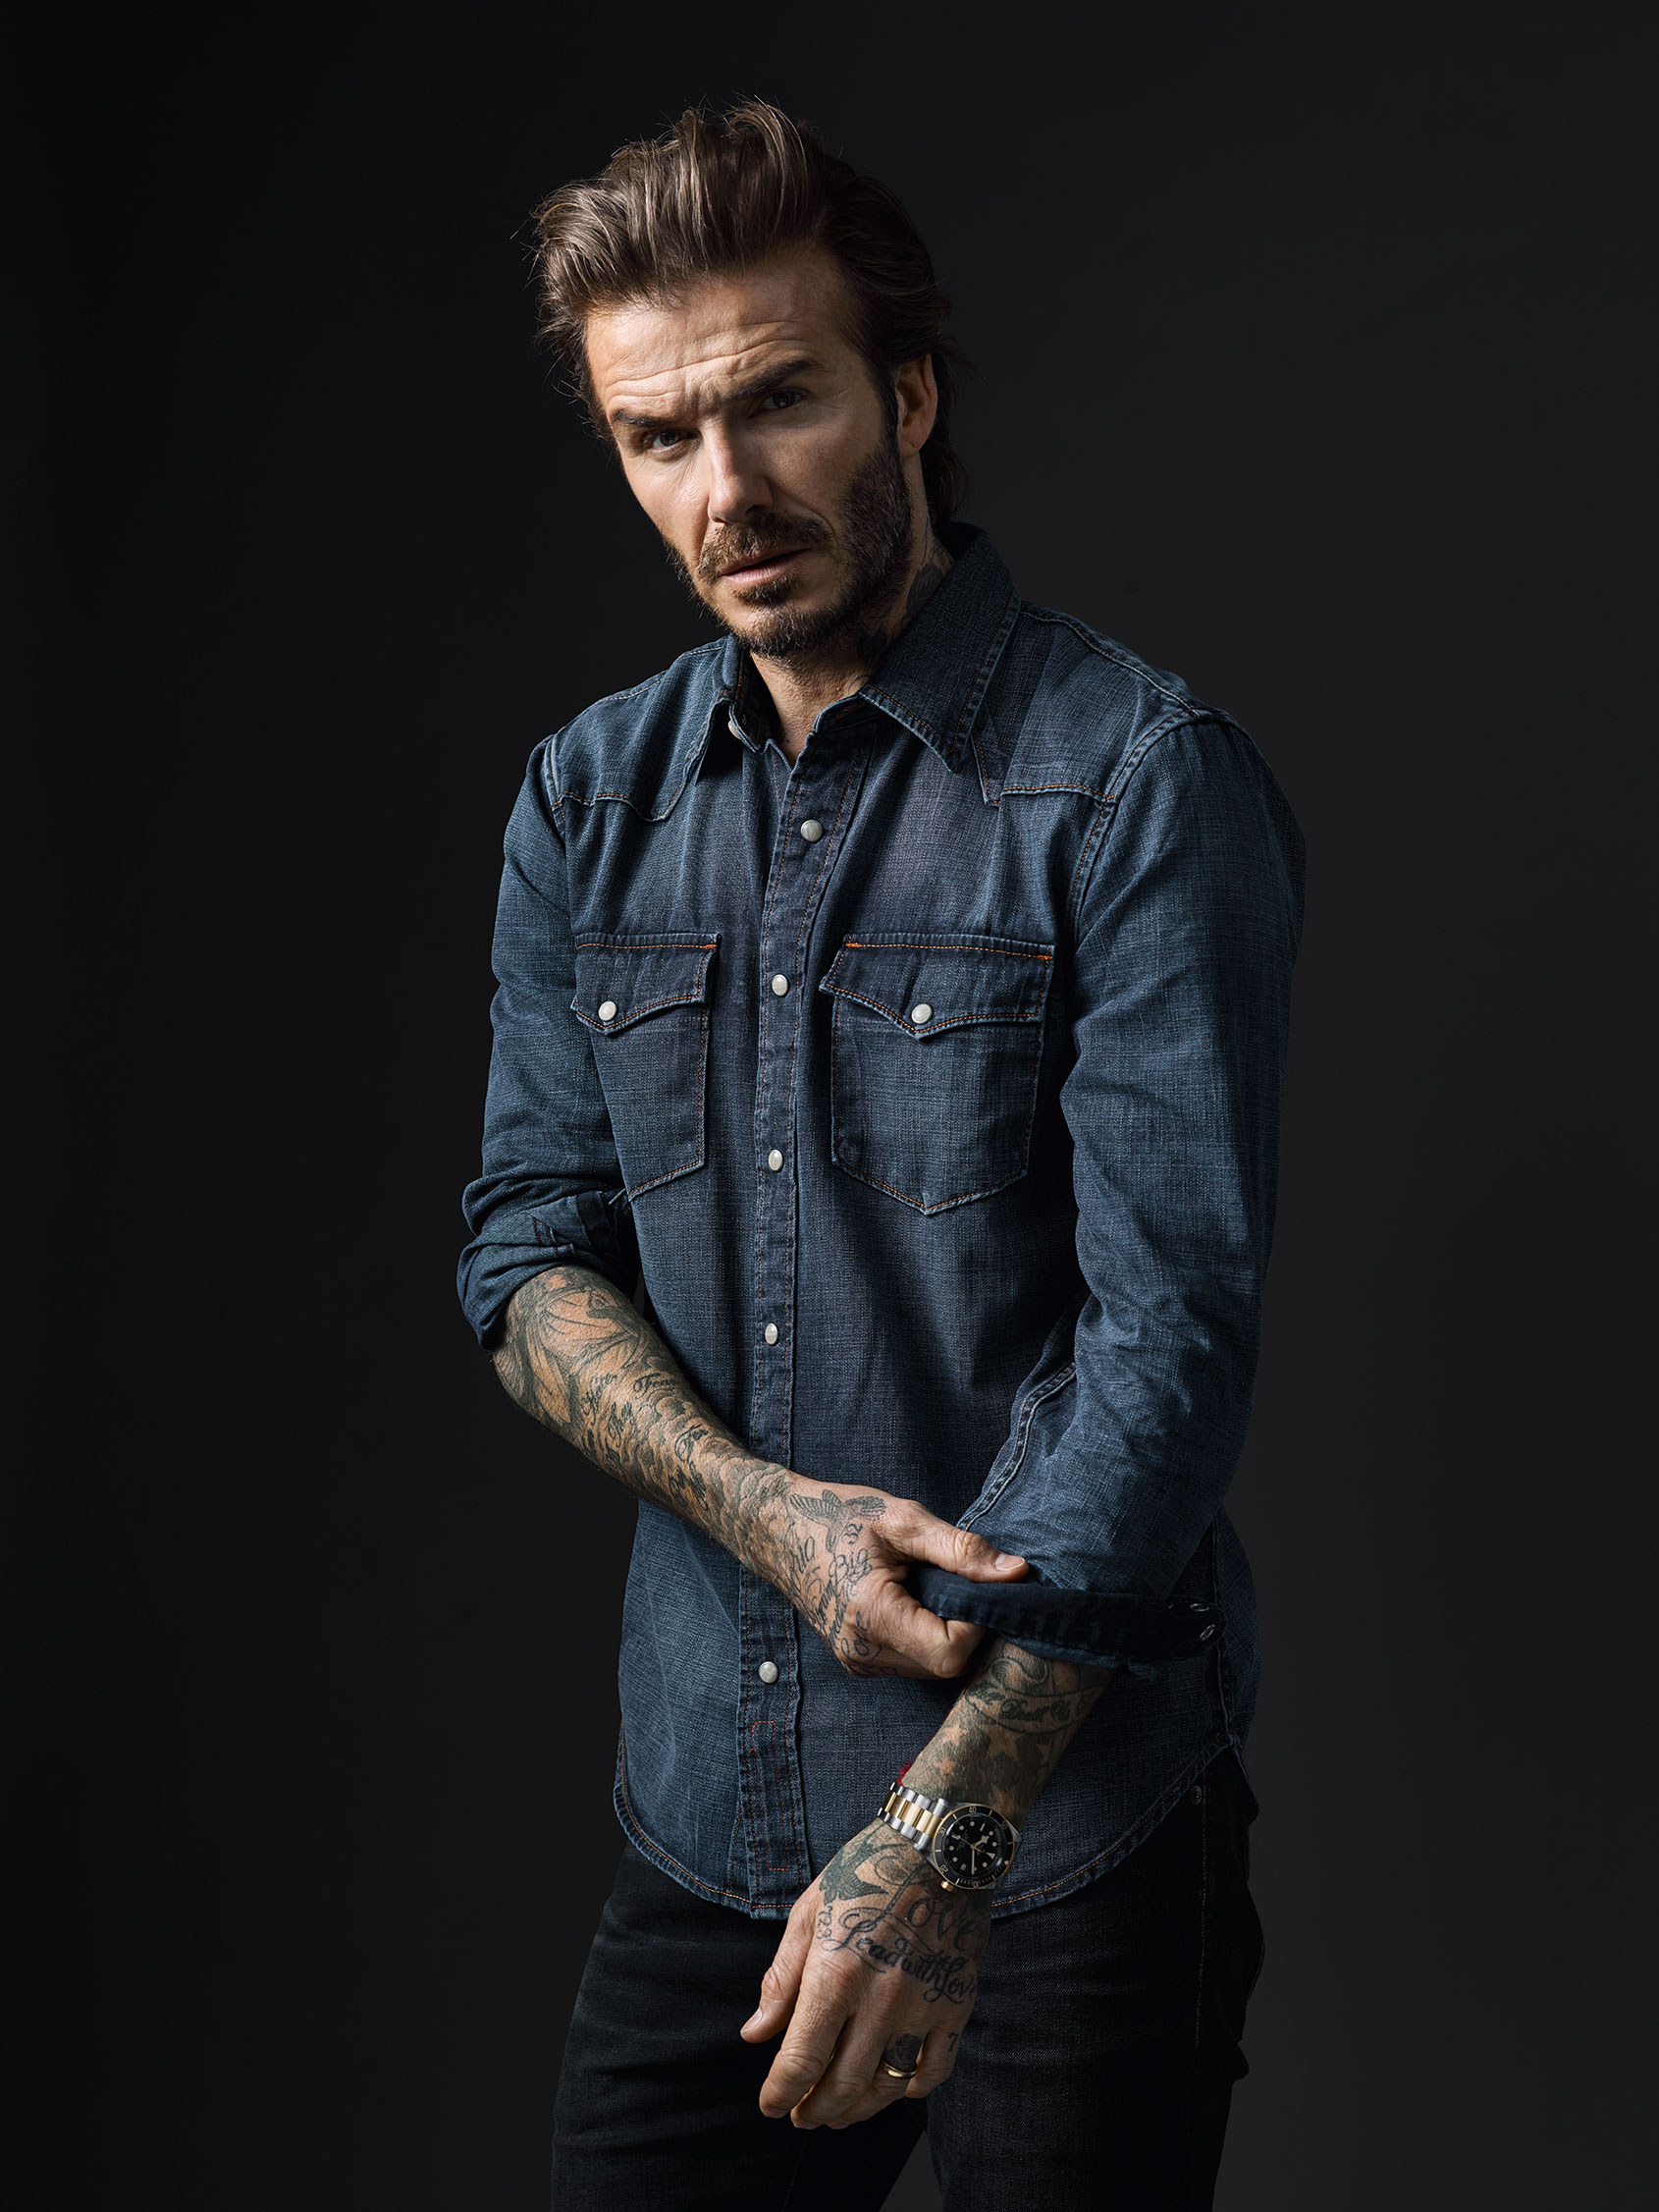 Tudor Announces David Beckham As New Brand Ambassador For 2017